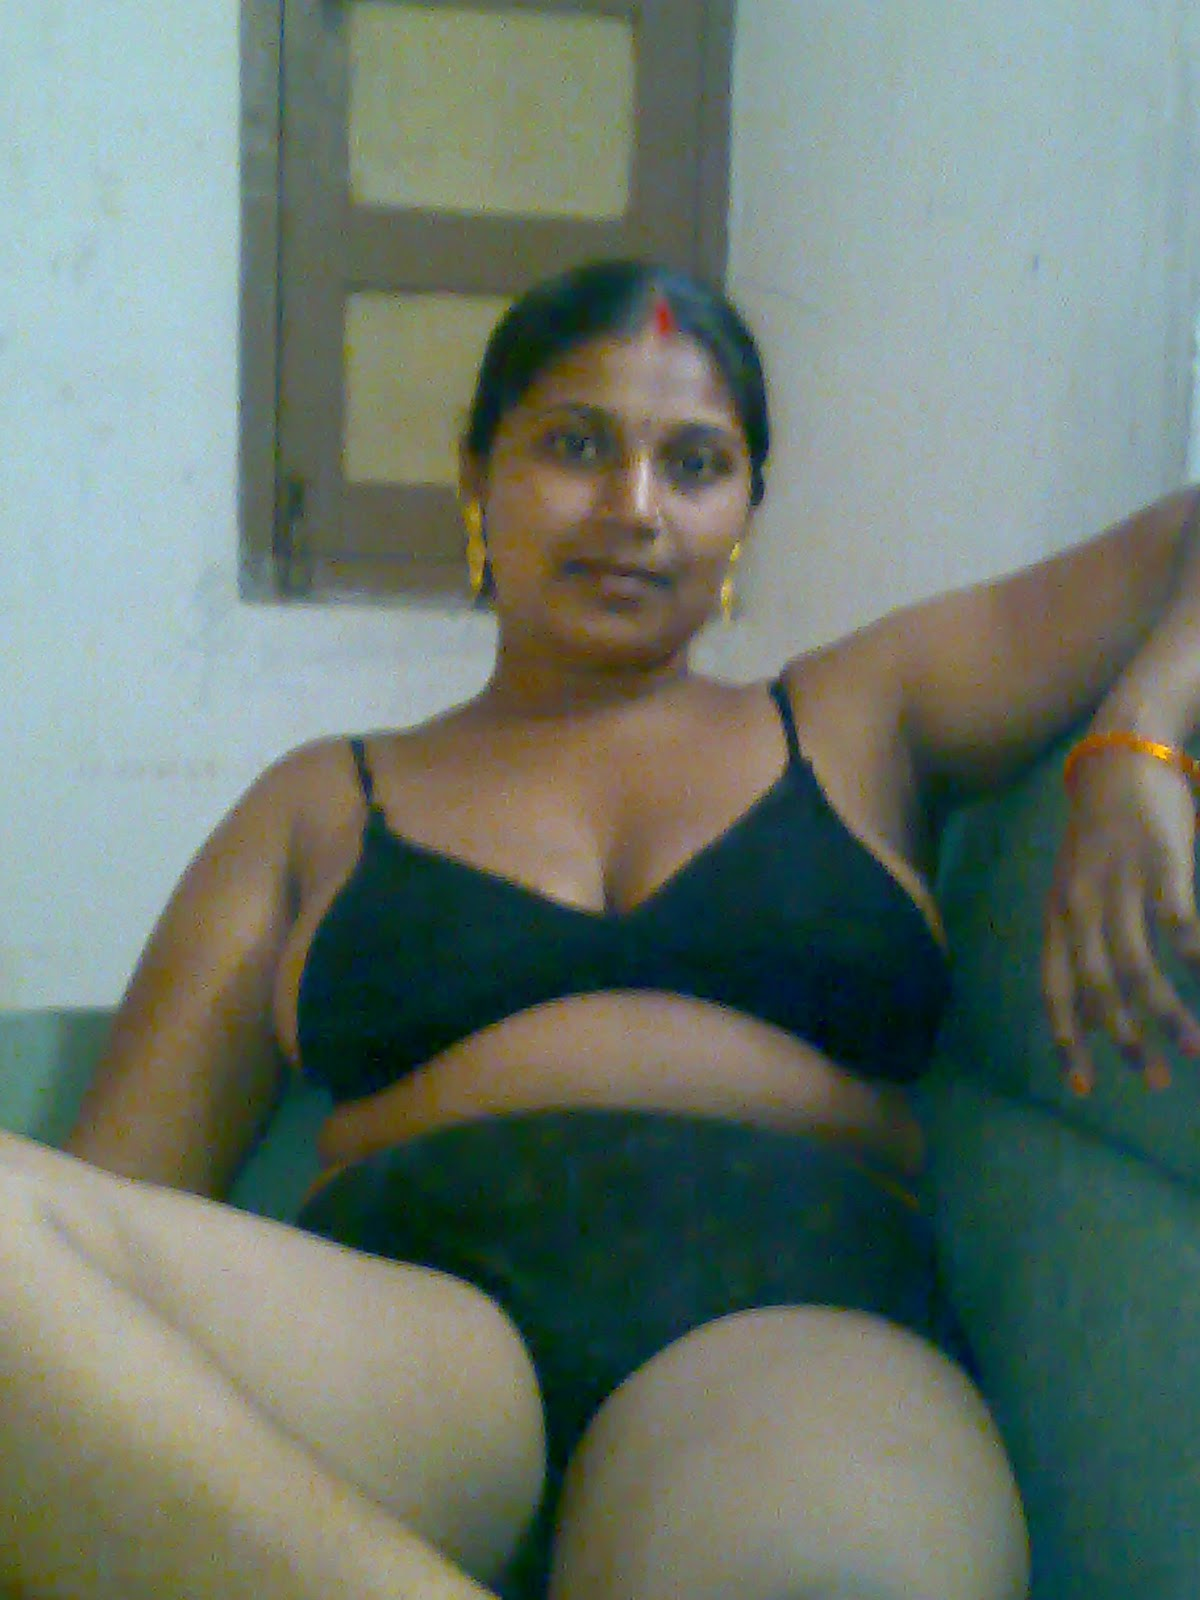 nude babes south indian